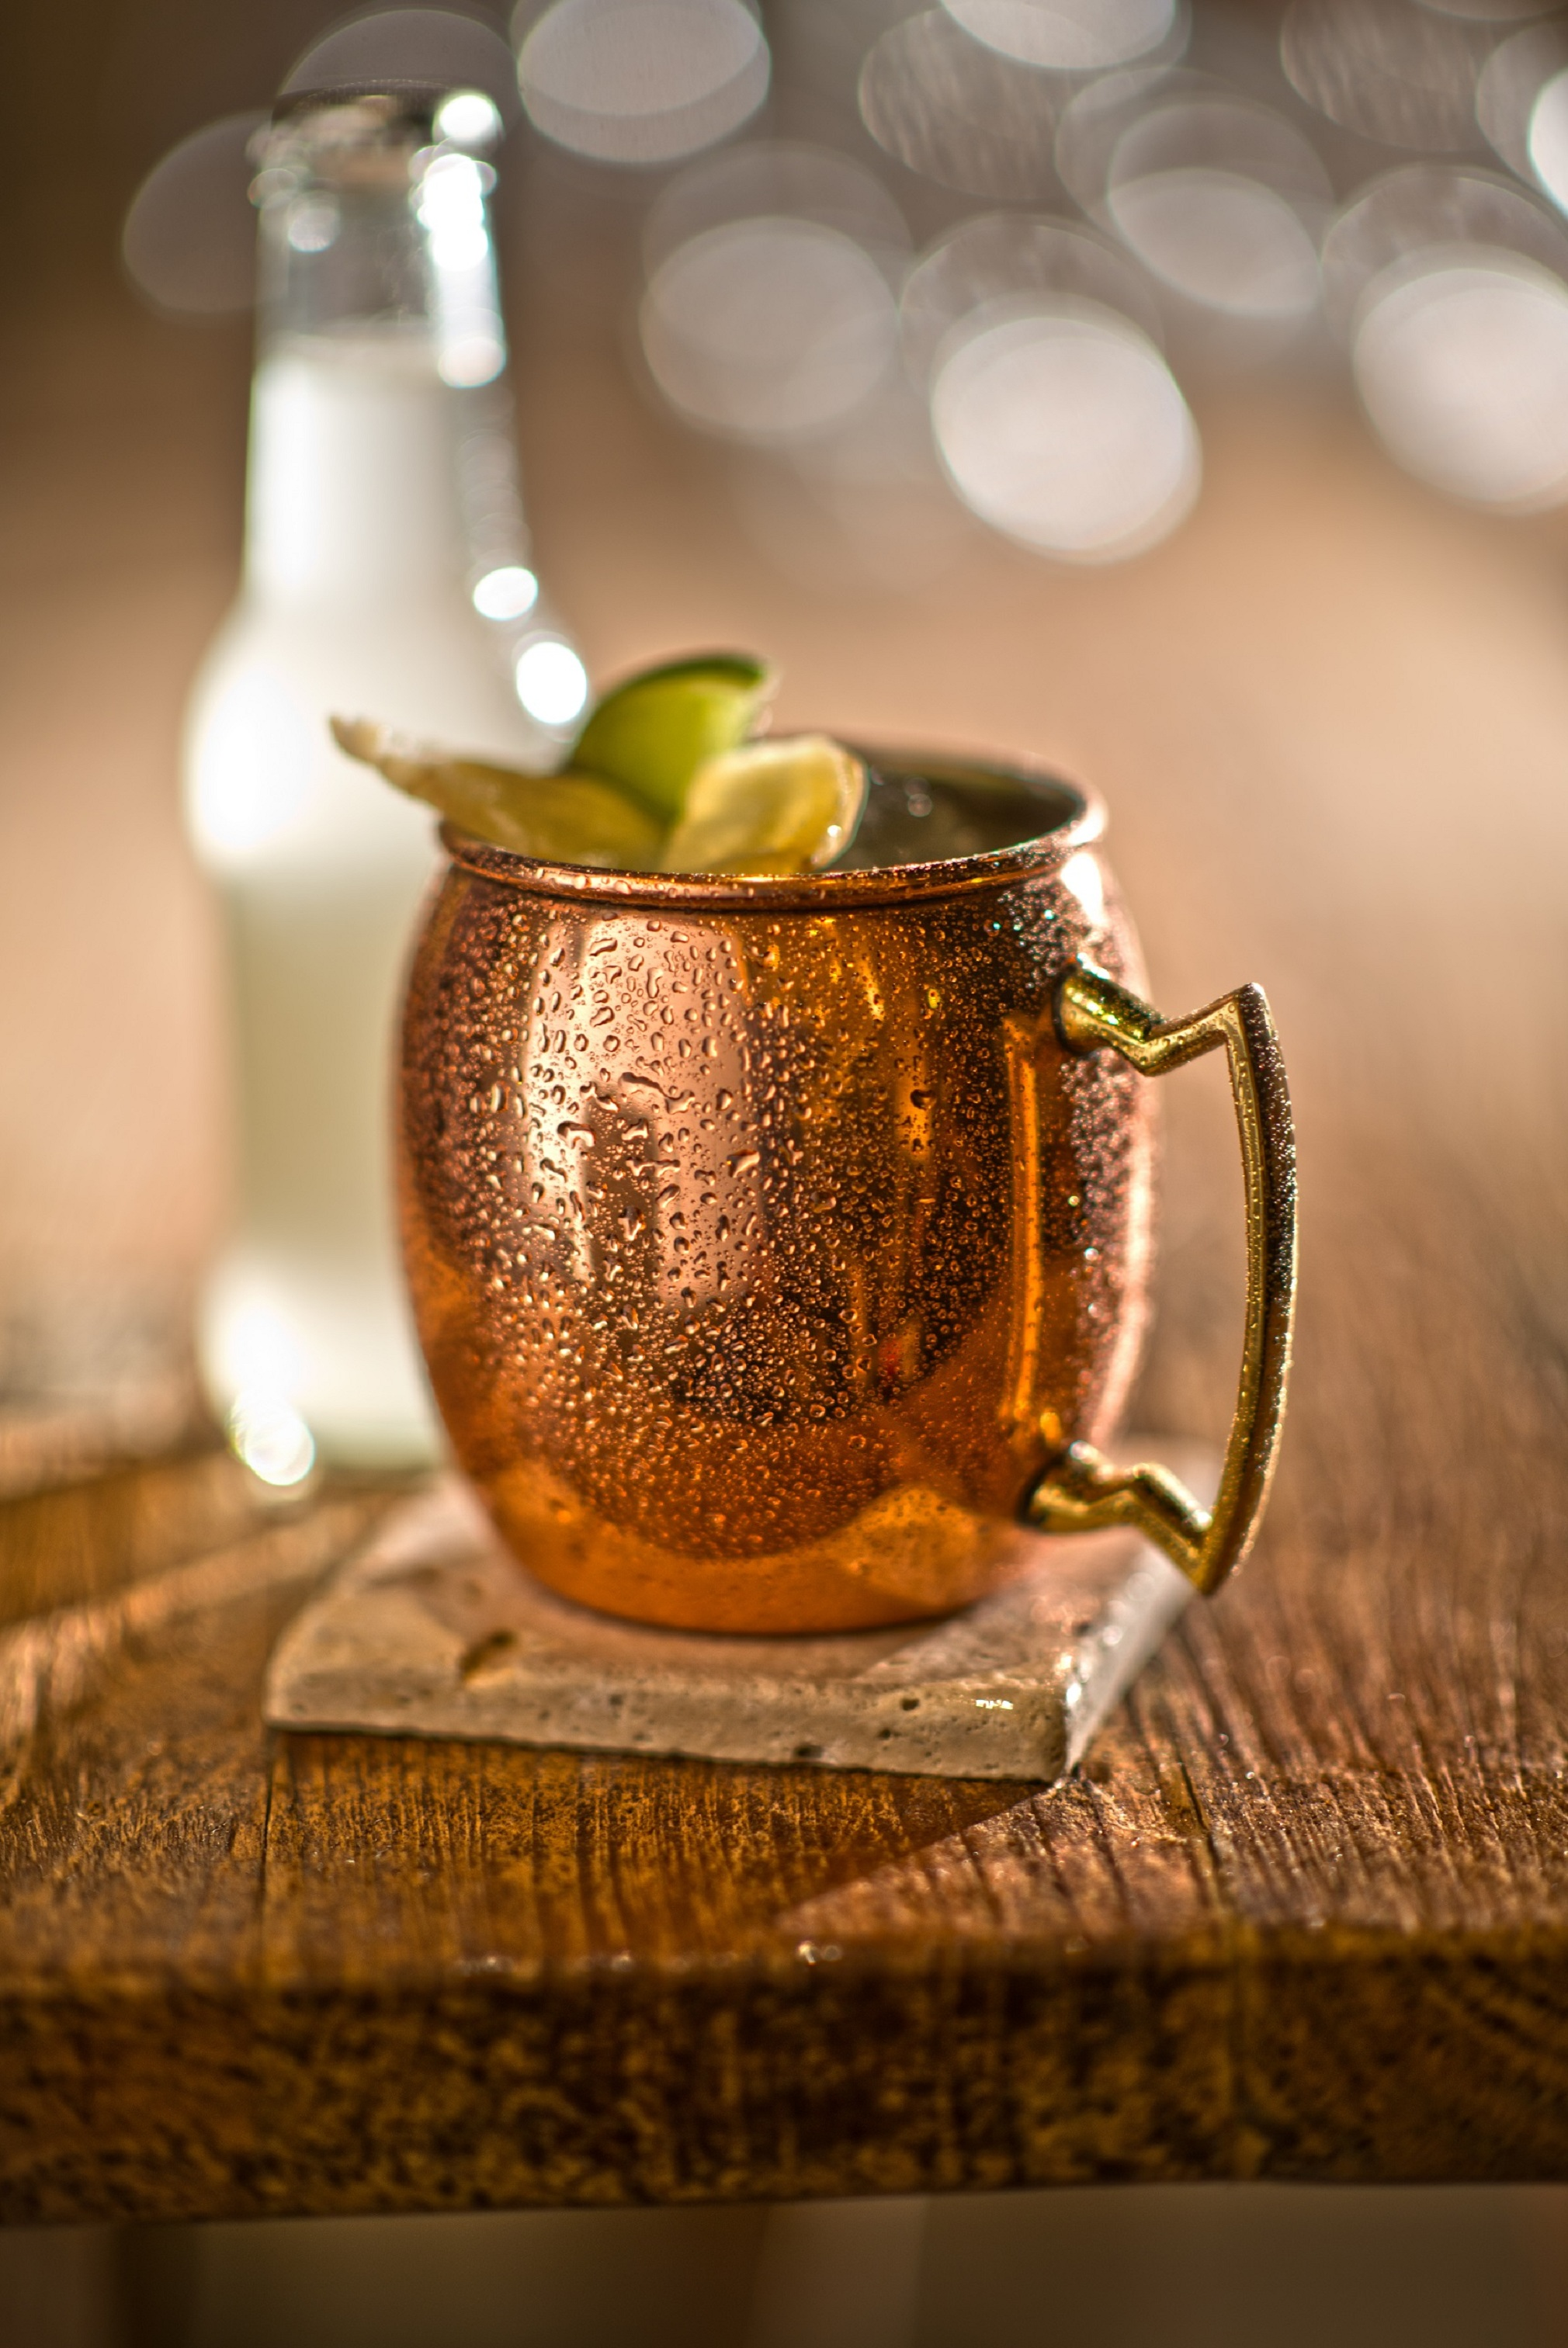 Sip on a Kentucky Mule at La Cave while you watch the Derby. Photo courtesy of La Cave.